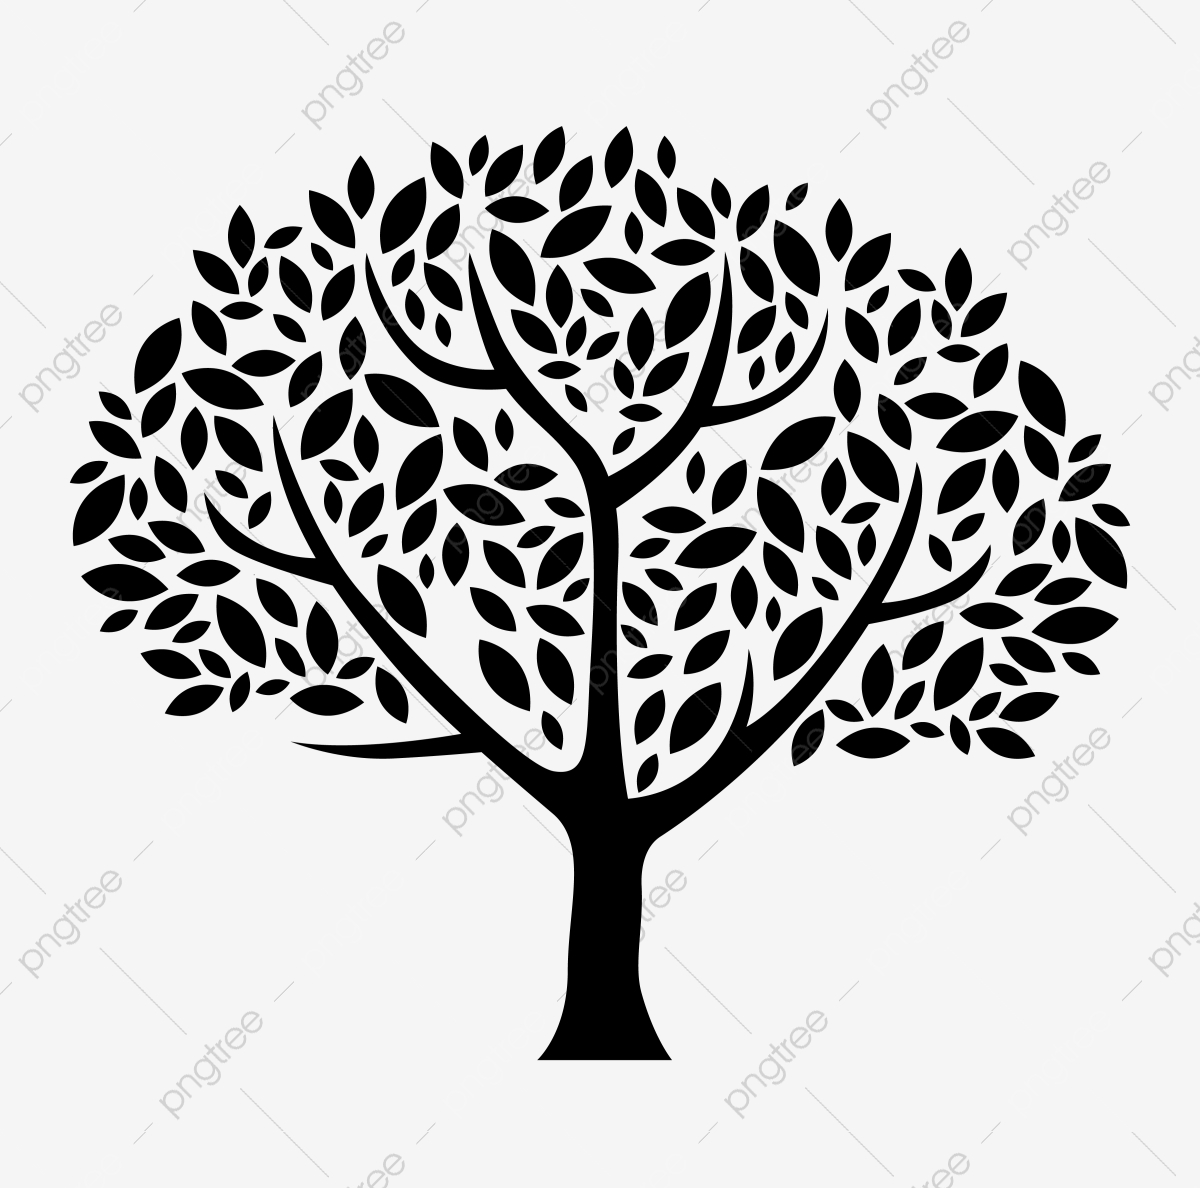 Tree Silhouette Png Vector Psd And Clipart With Transparent Background For Free Download Pngtree